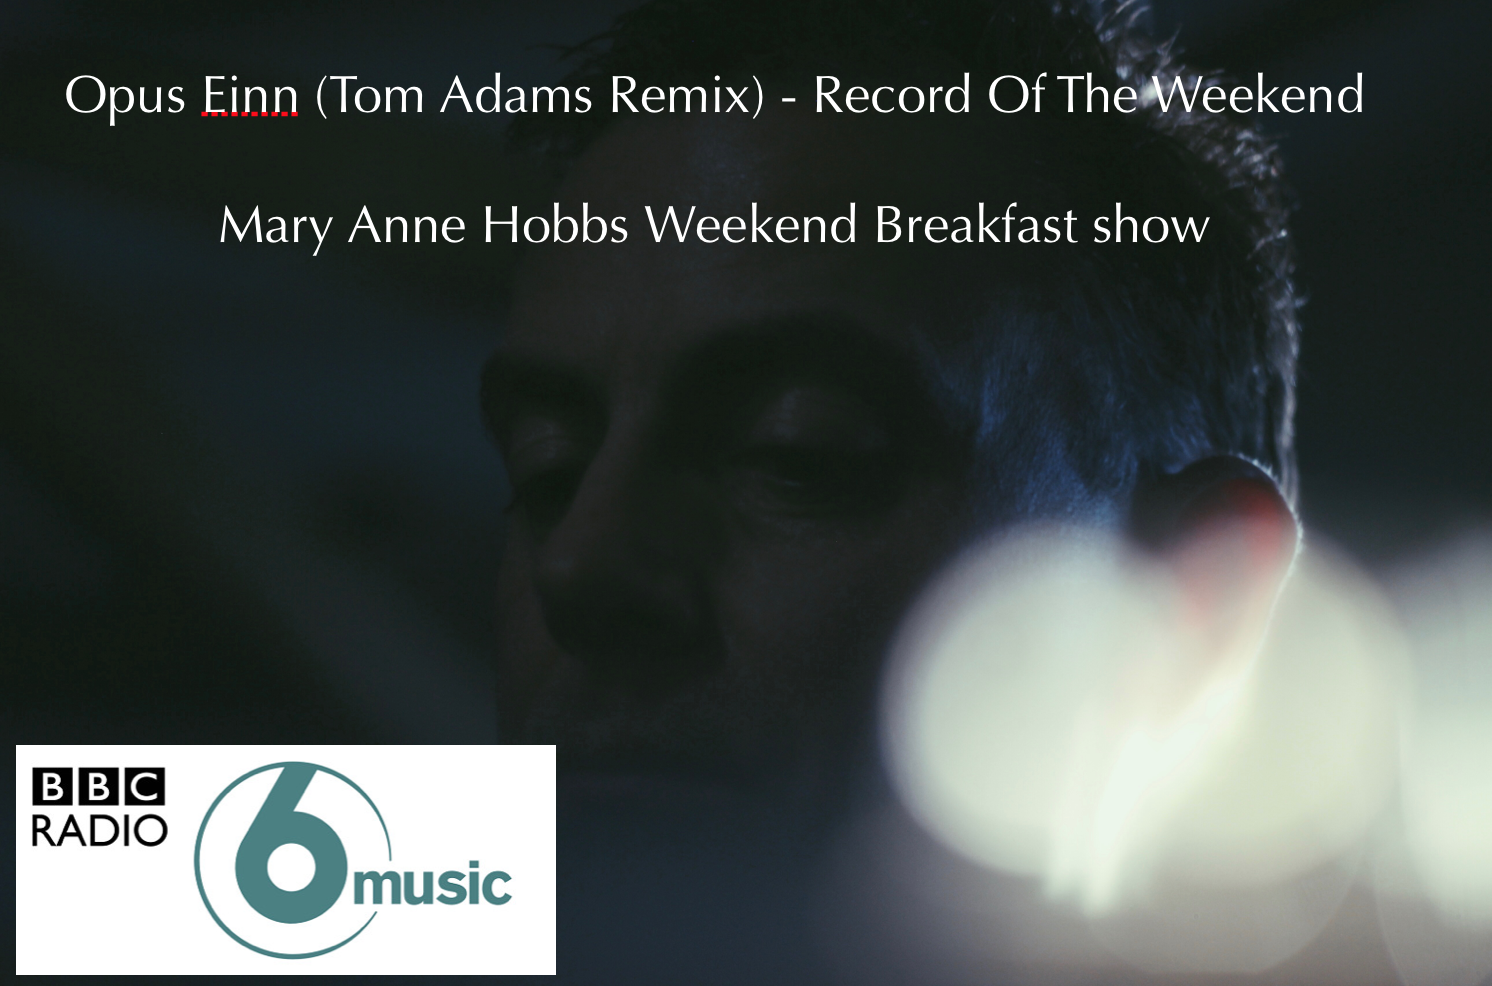 Opus Einn (Tom Adams Remix) - Record of the Weekend - Mary Anne Hobbs Weekend Breakfast Show (BBC6 Music)